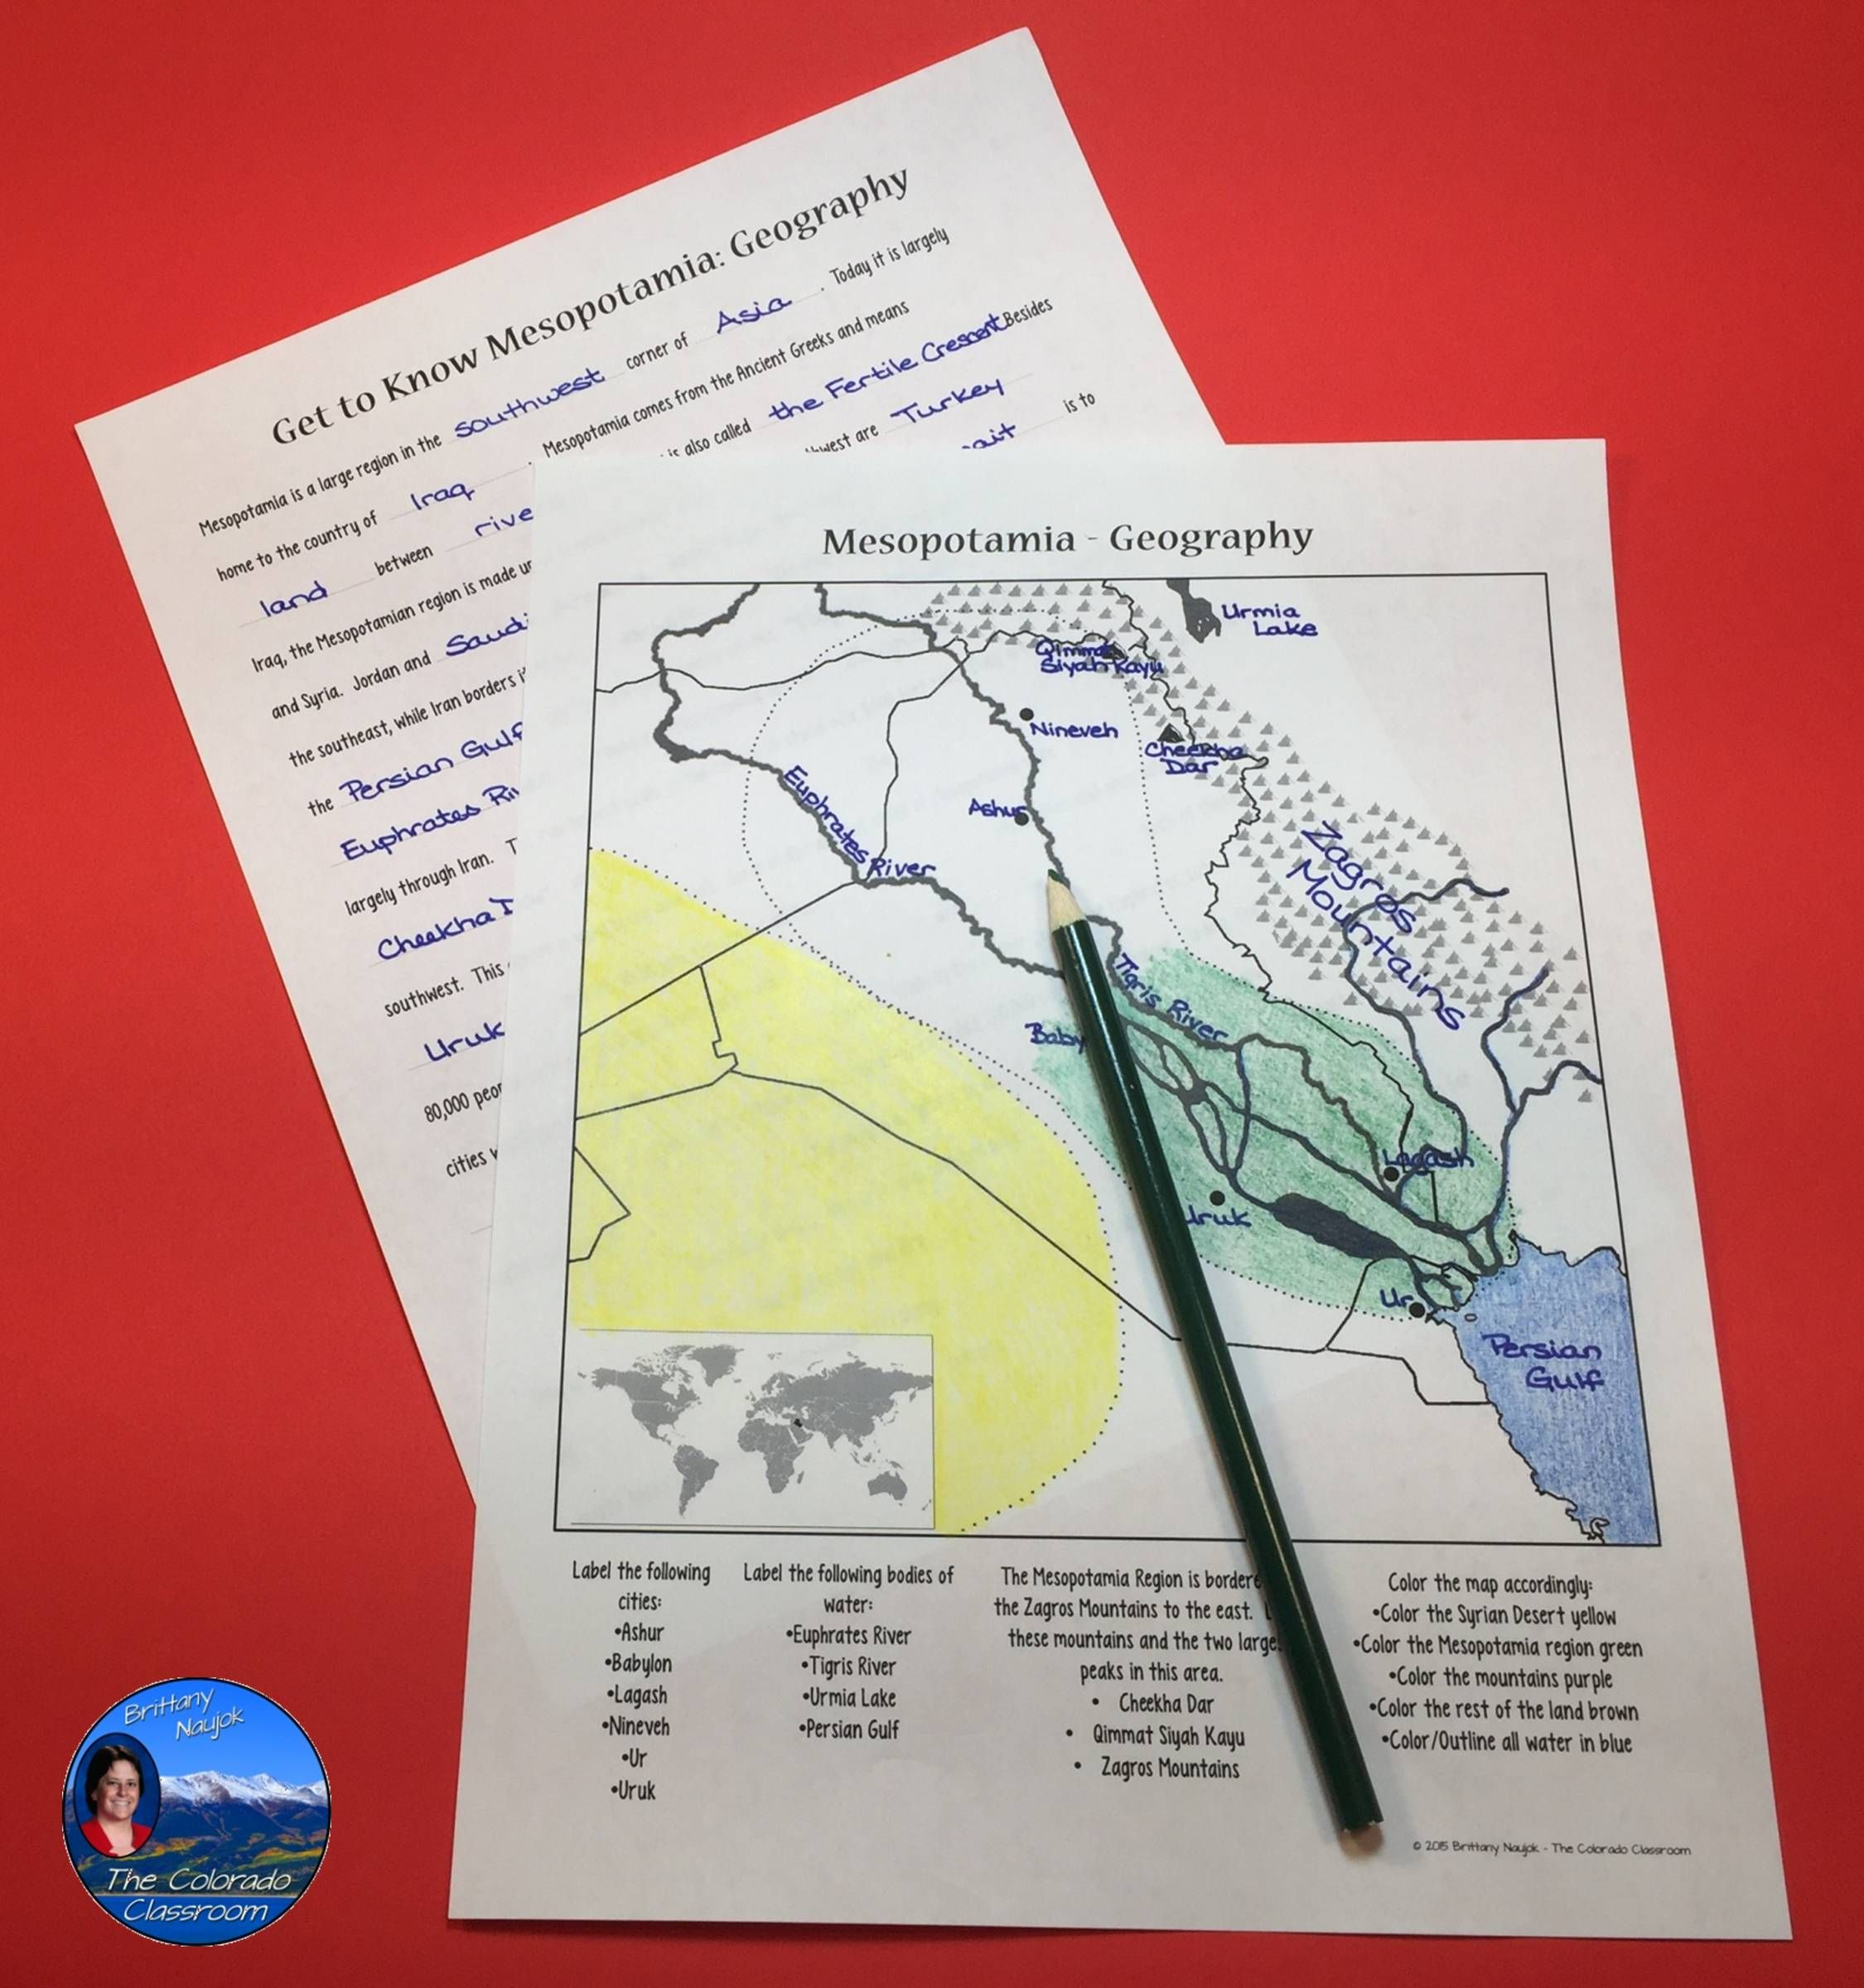 Get To Know Mesopotamia Geography